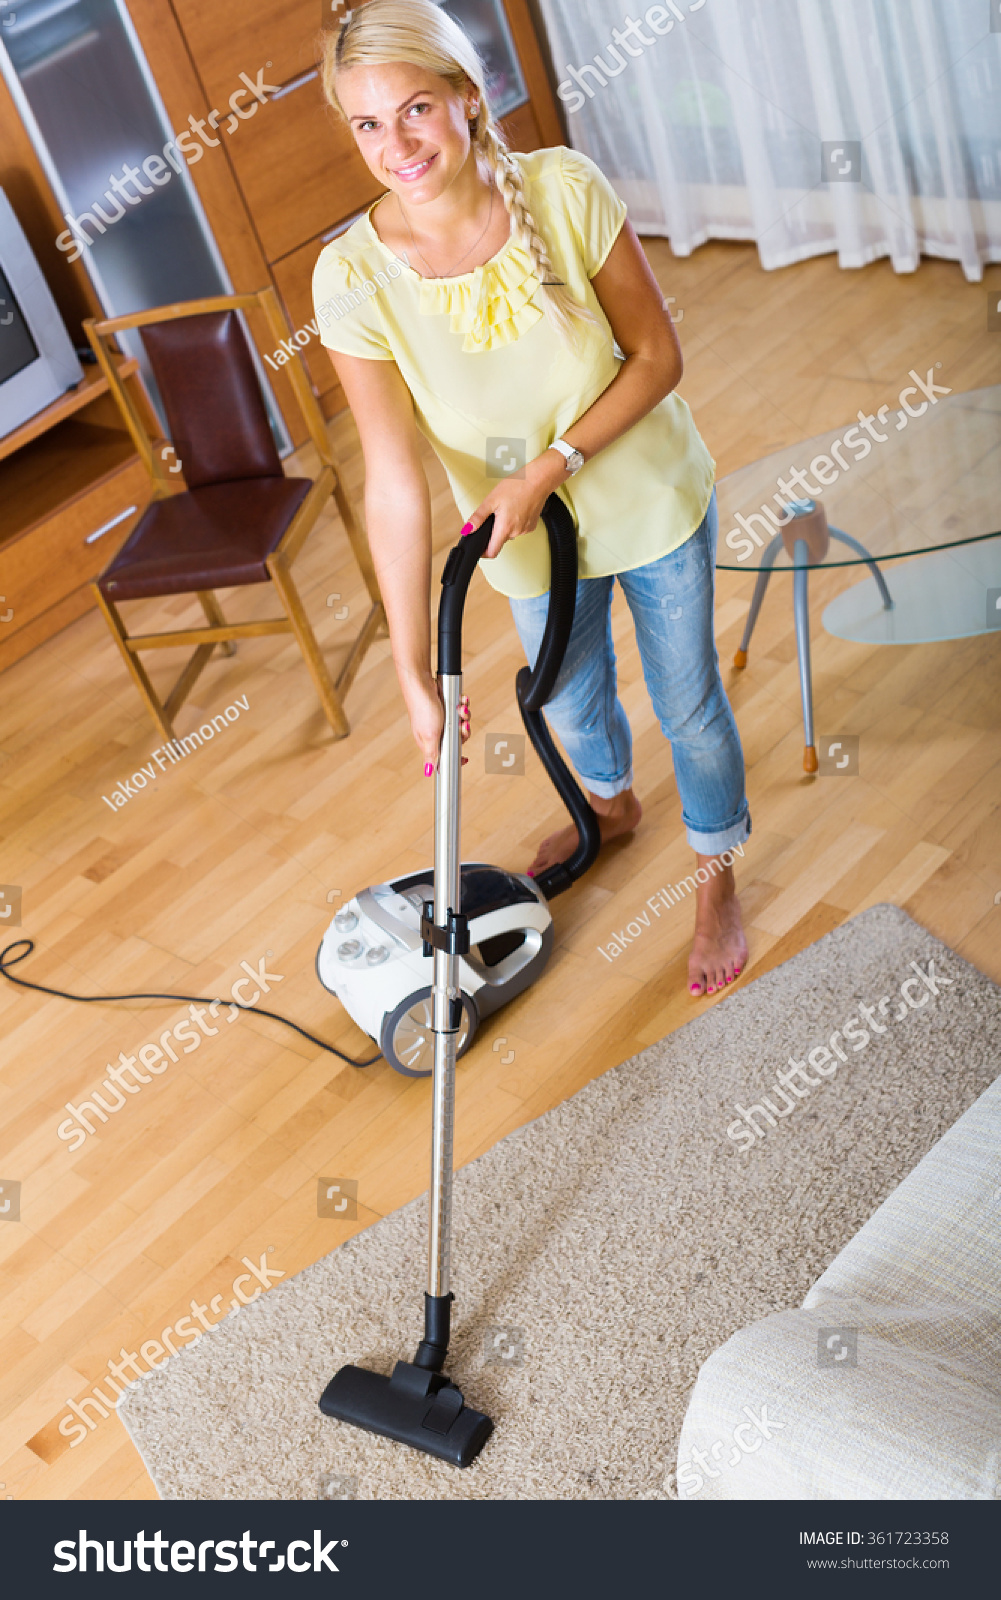 Young Woman Using Vacuum Cleaner During Stock Photo 361723358 Shutterstock